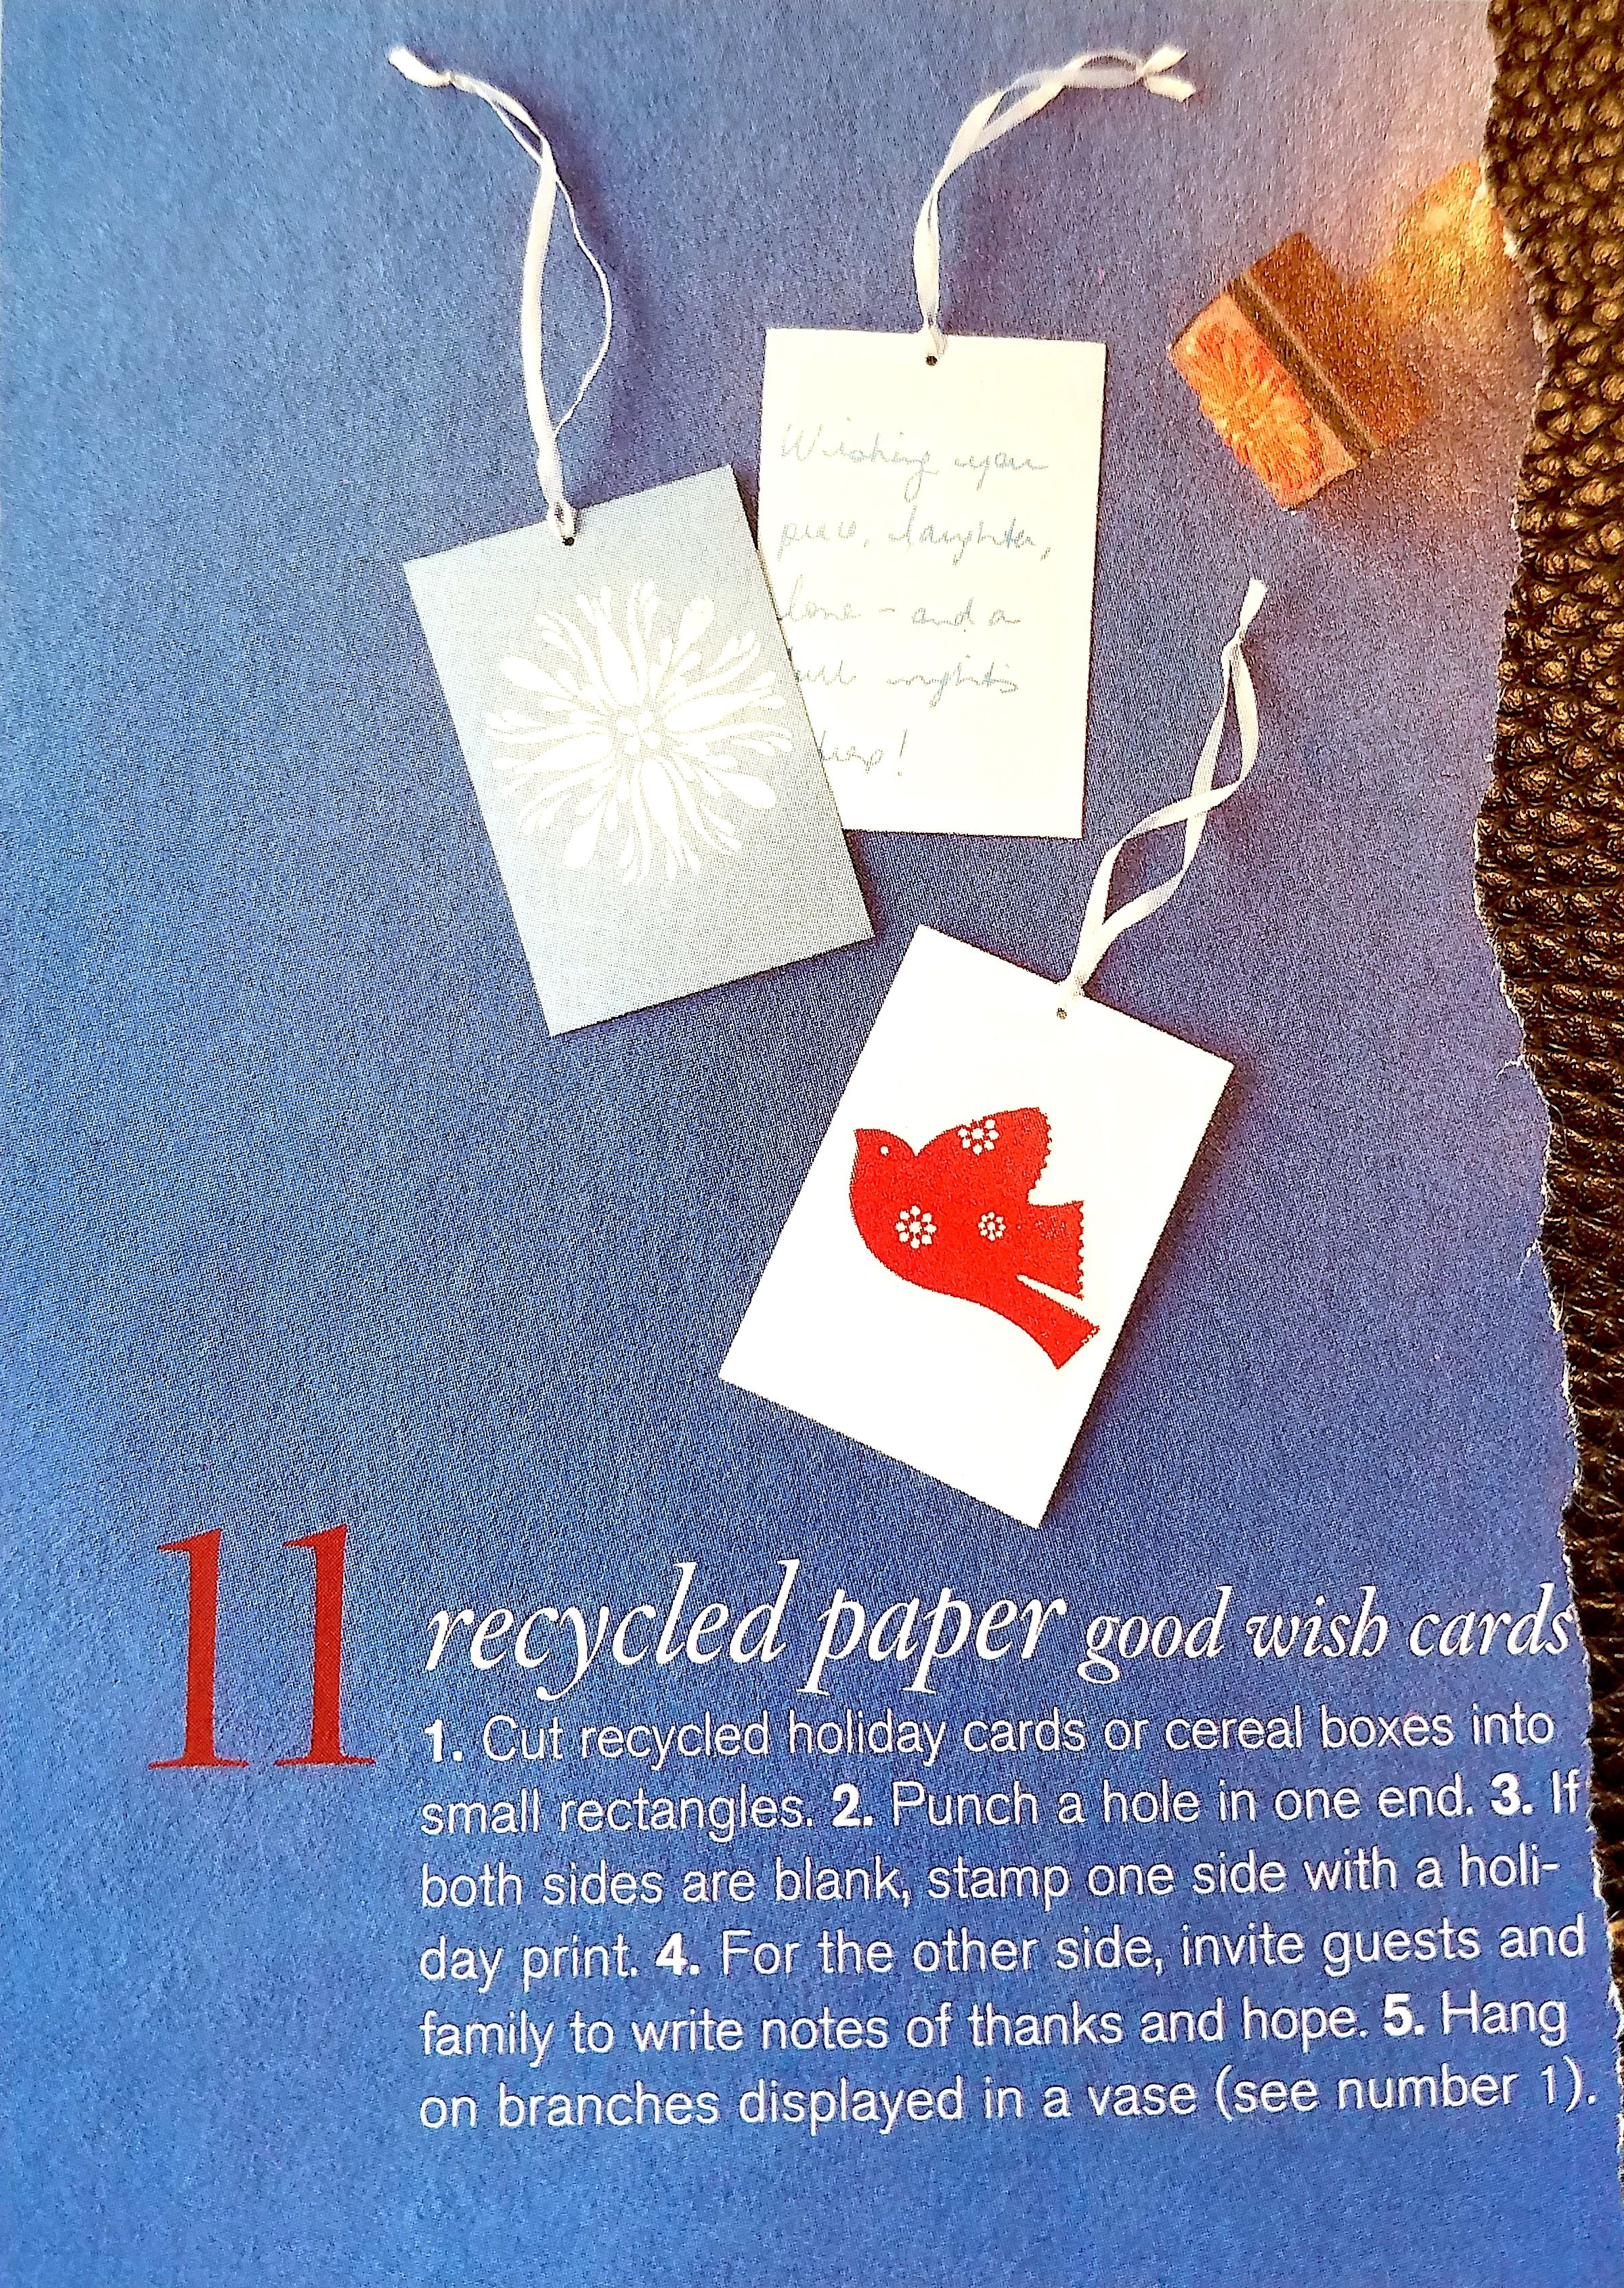 Upcycle Old Christmas Cards Into Wish Cards